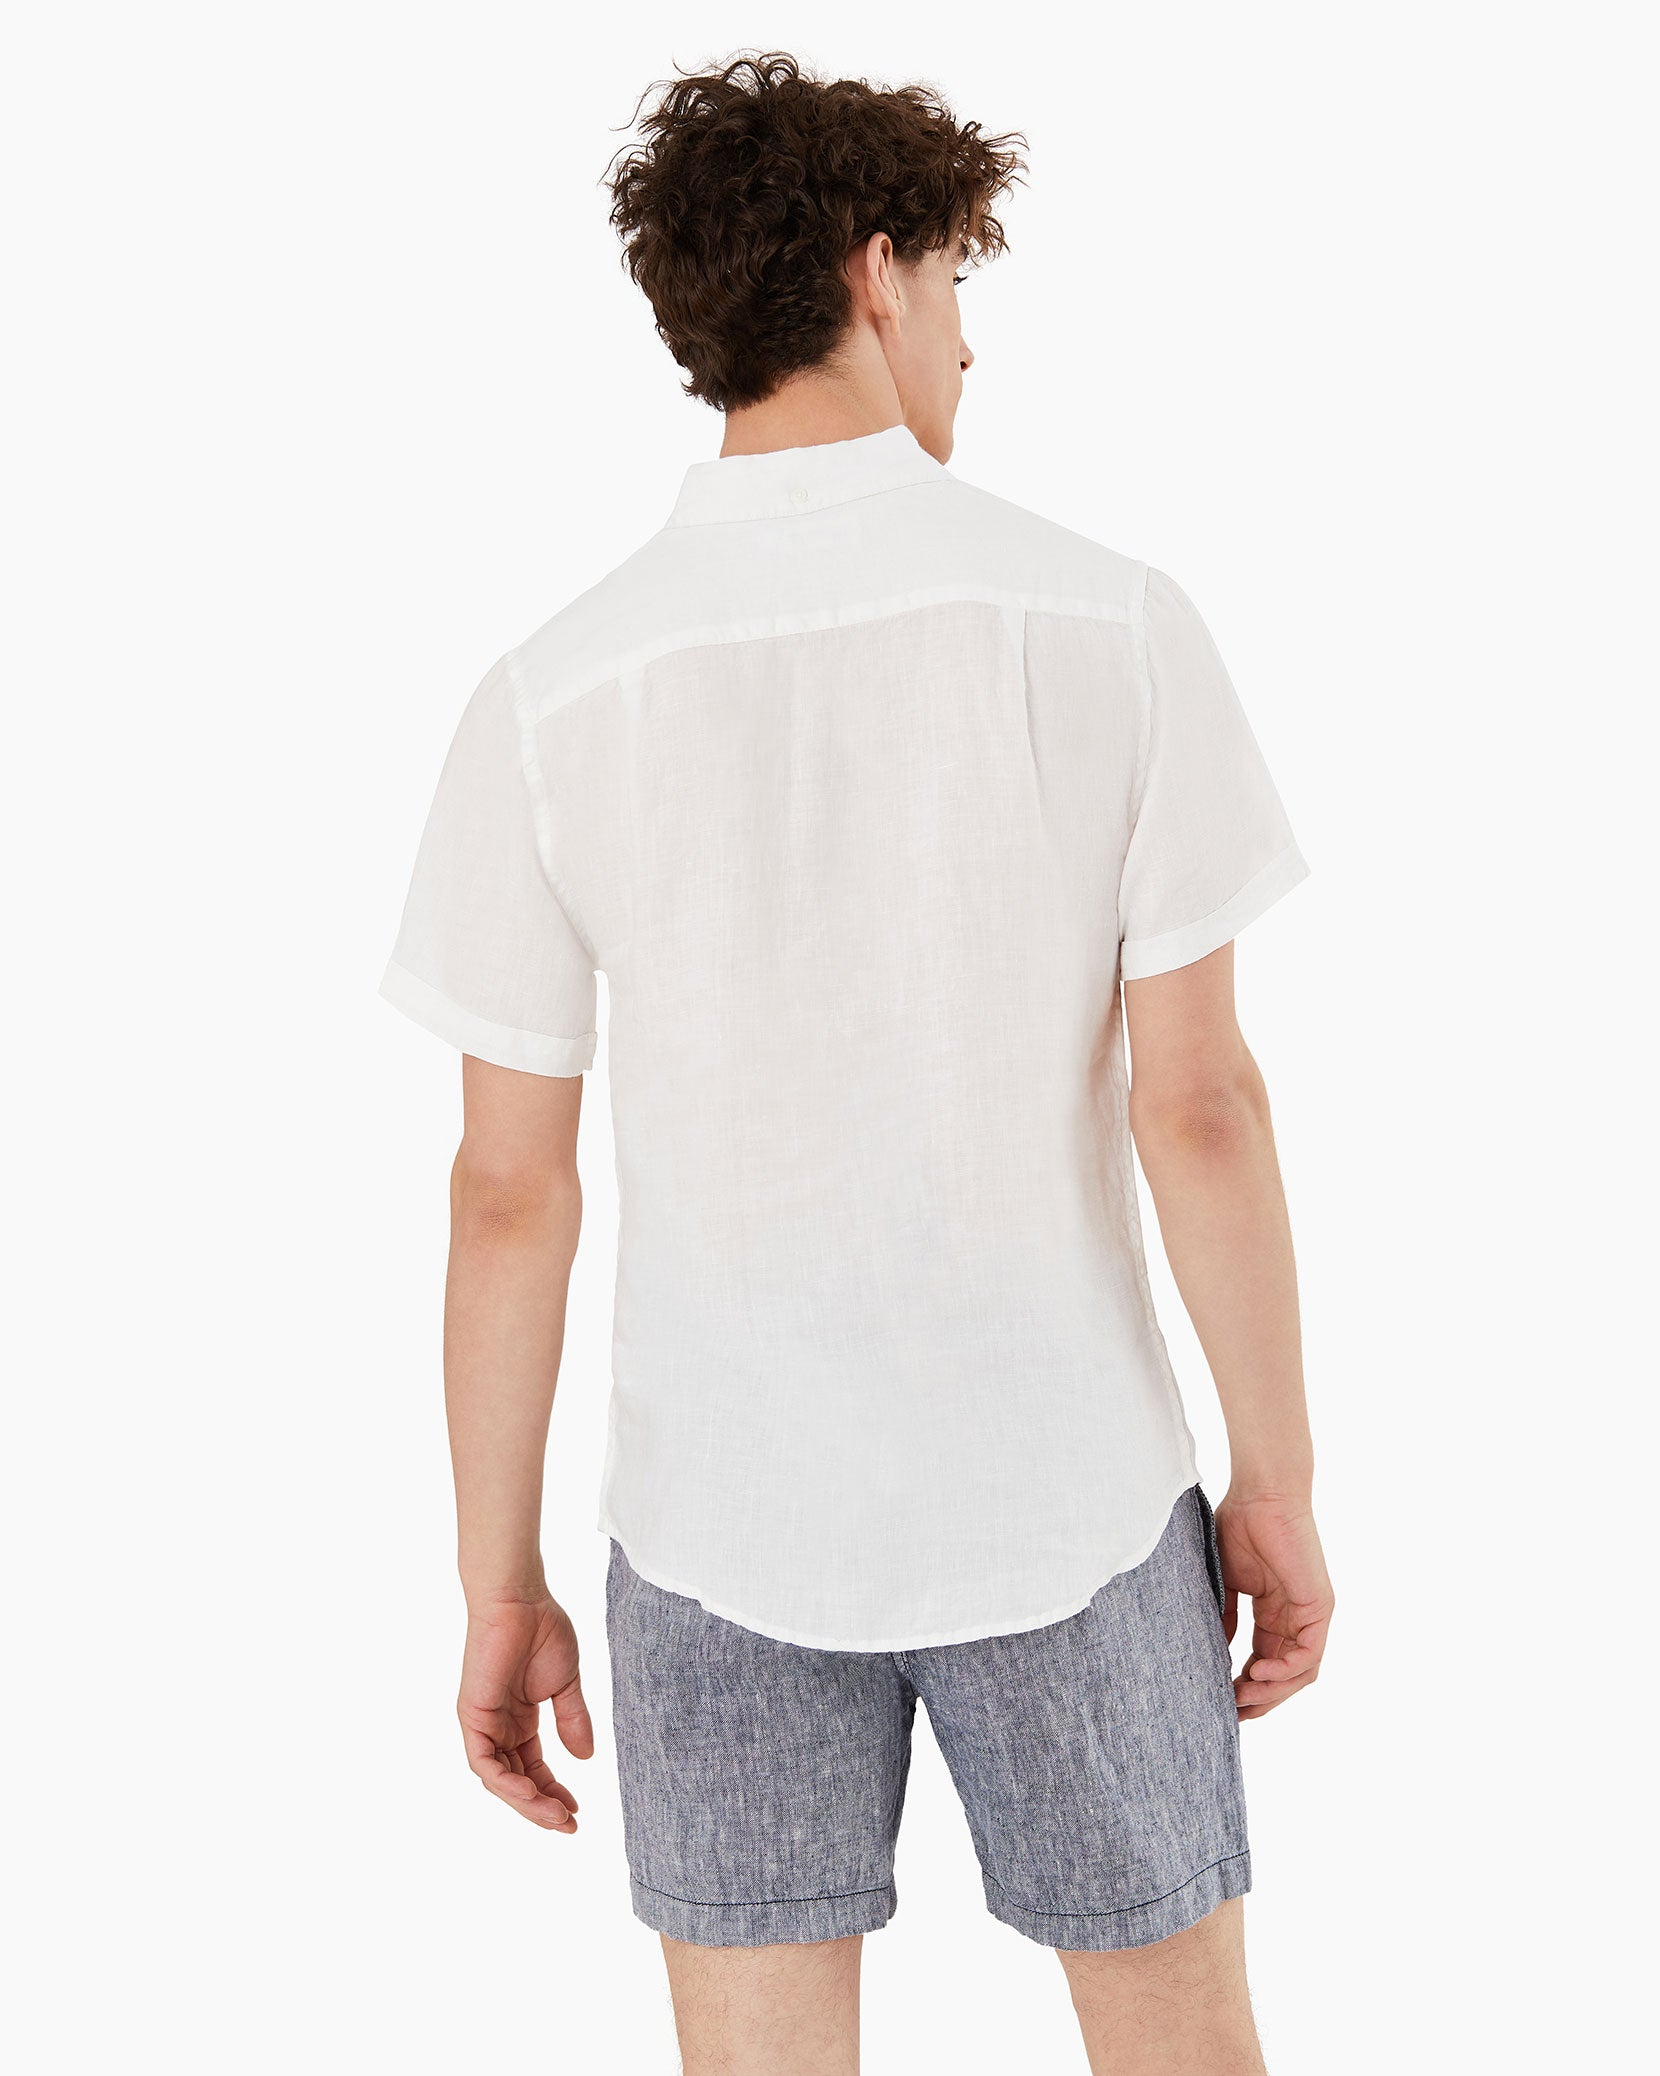 Stretch Linen Short Sleeve Shirt in White - 3 - Onia